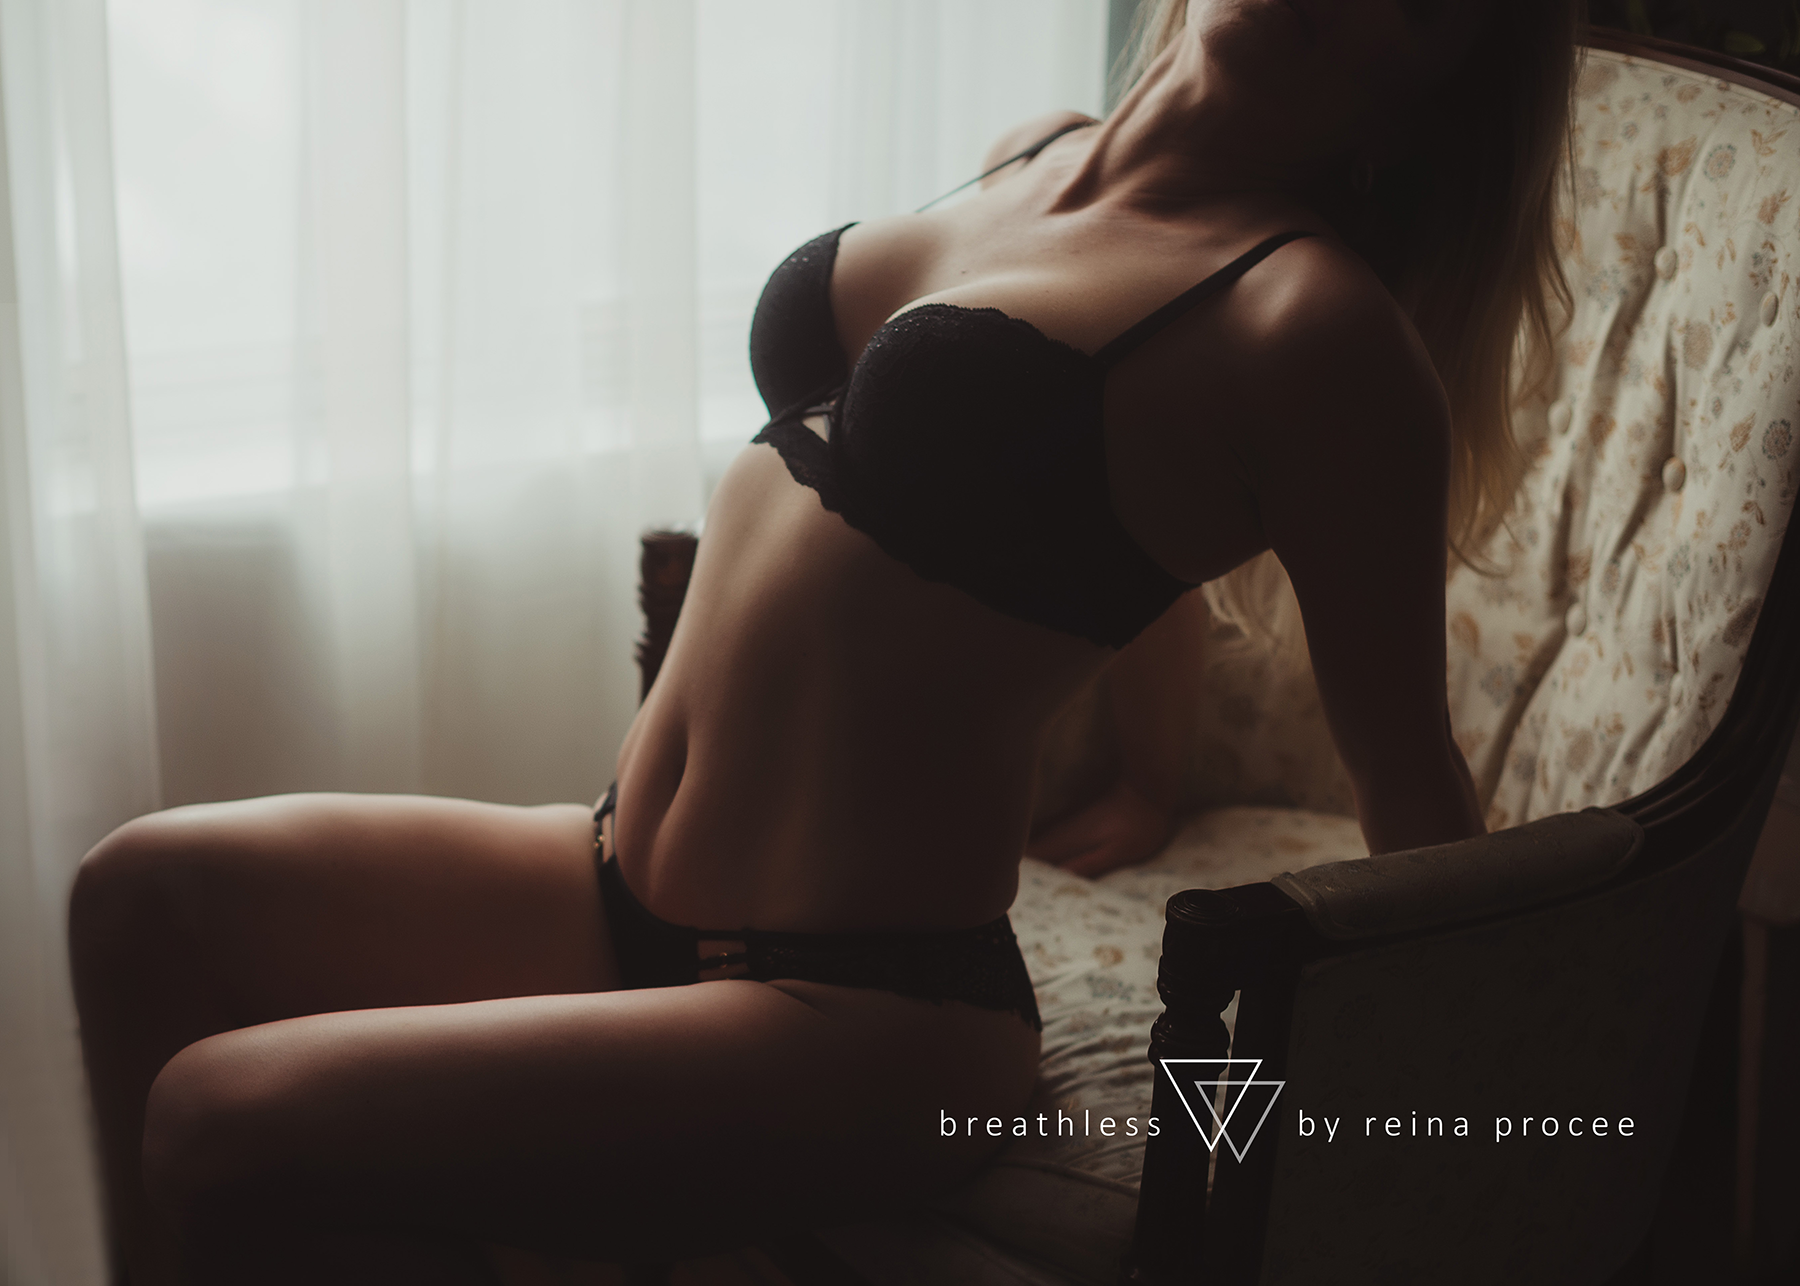 montreal-boudoir-beauty-exotic-empower-women-ladies-comfort-progress-photography-photographer-4.png